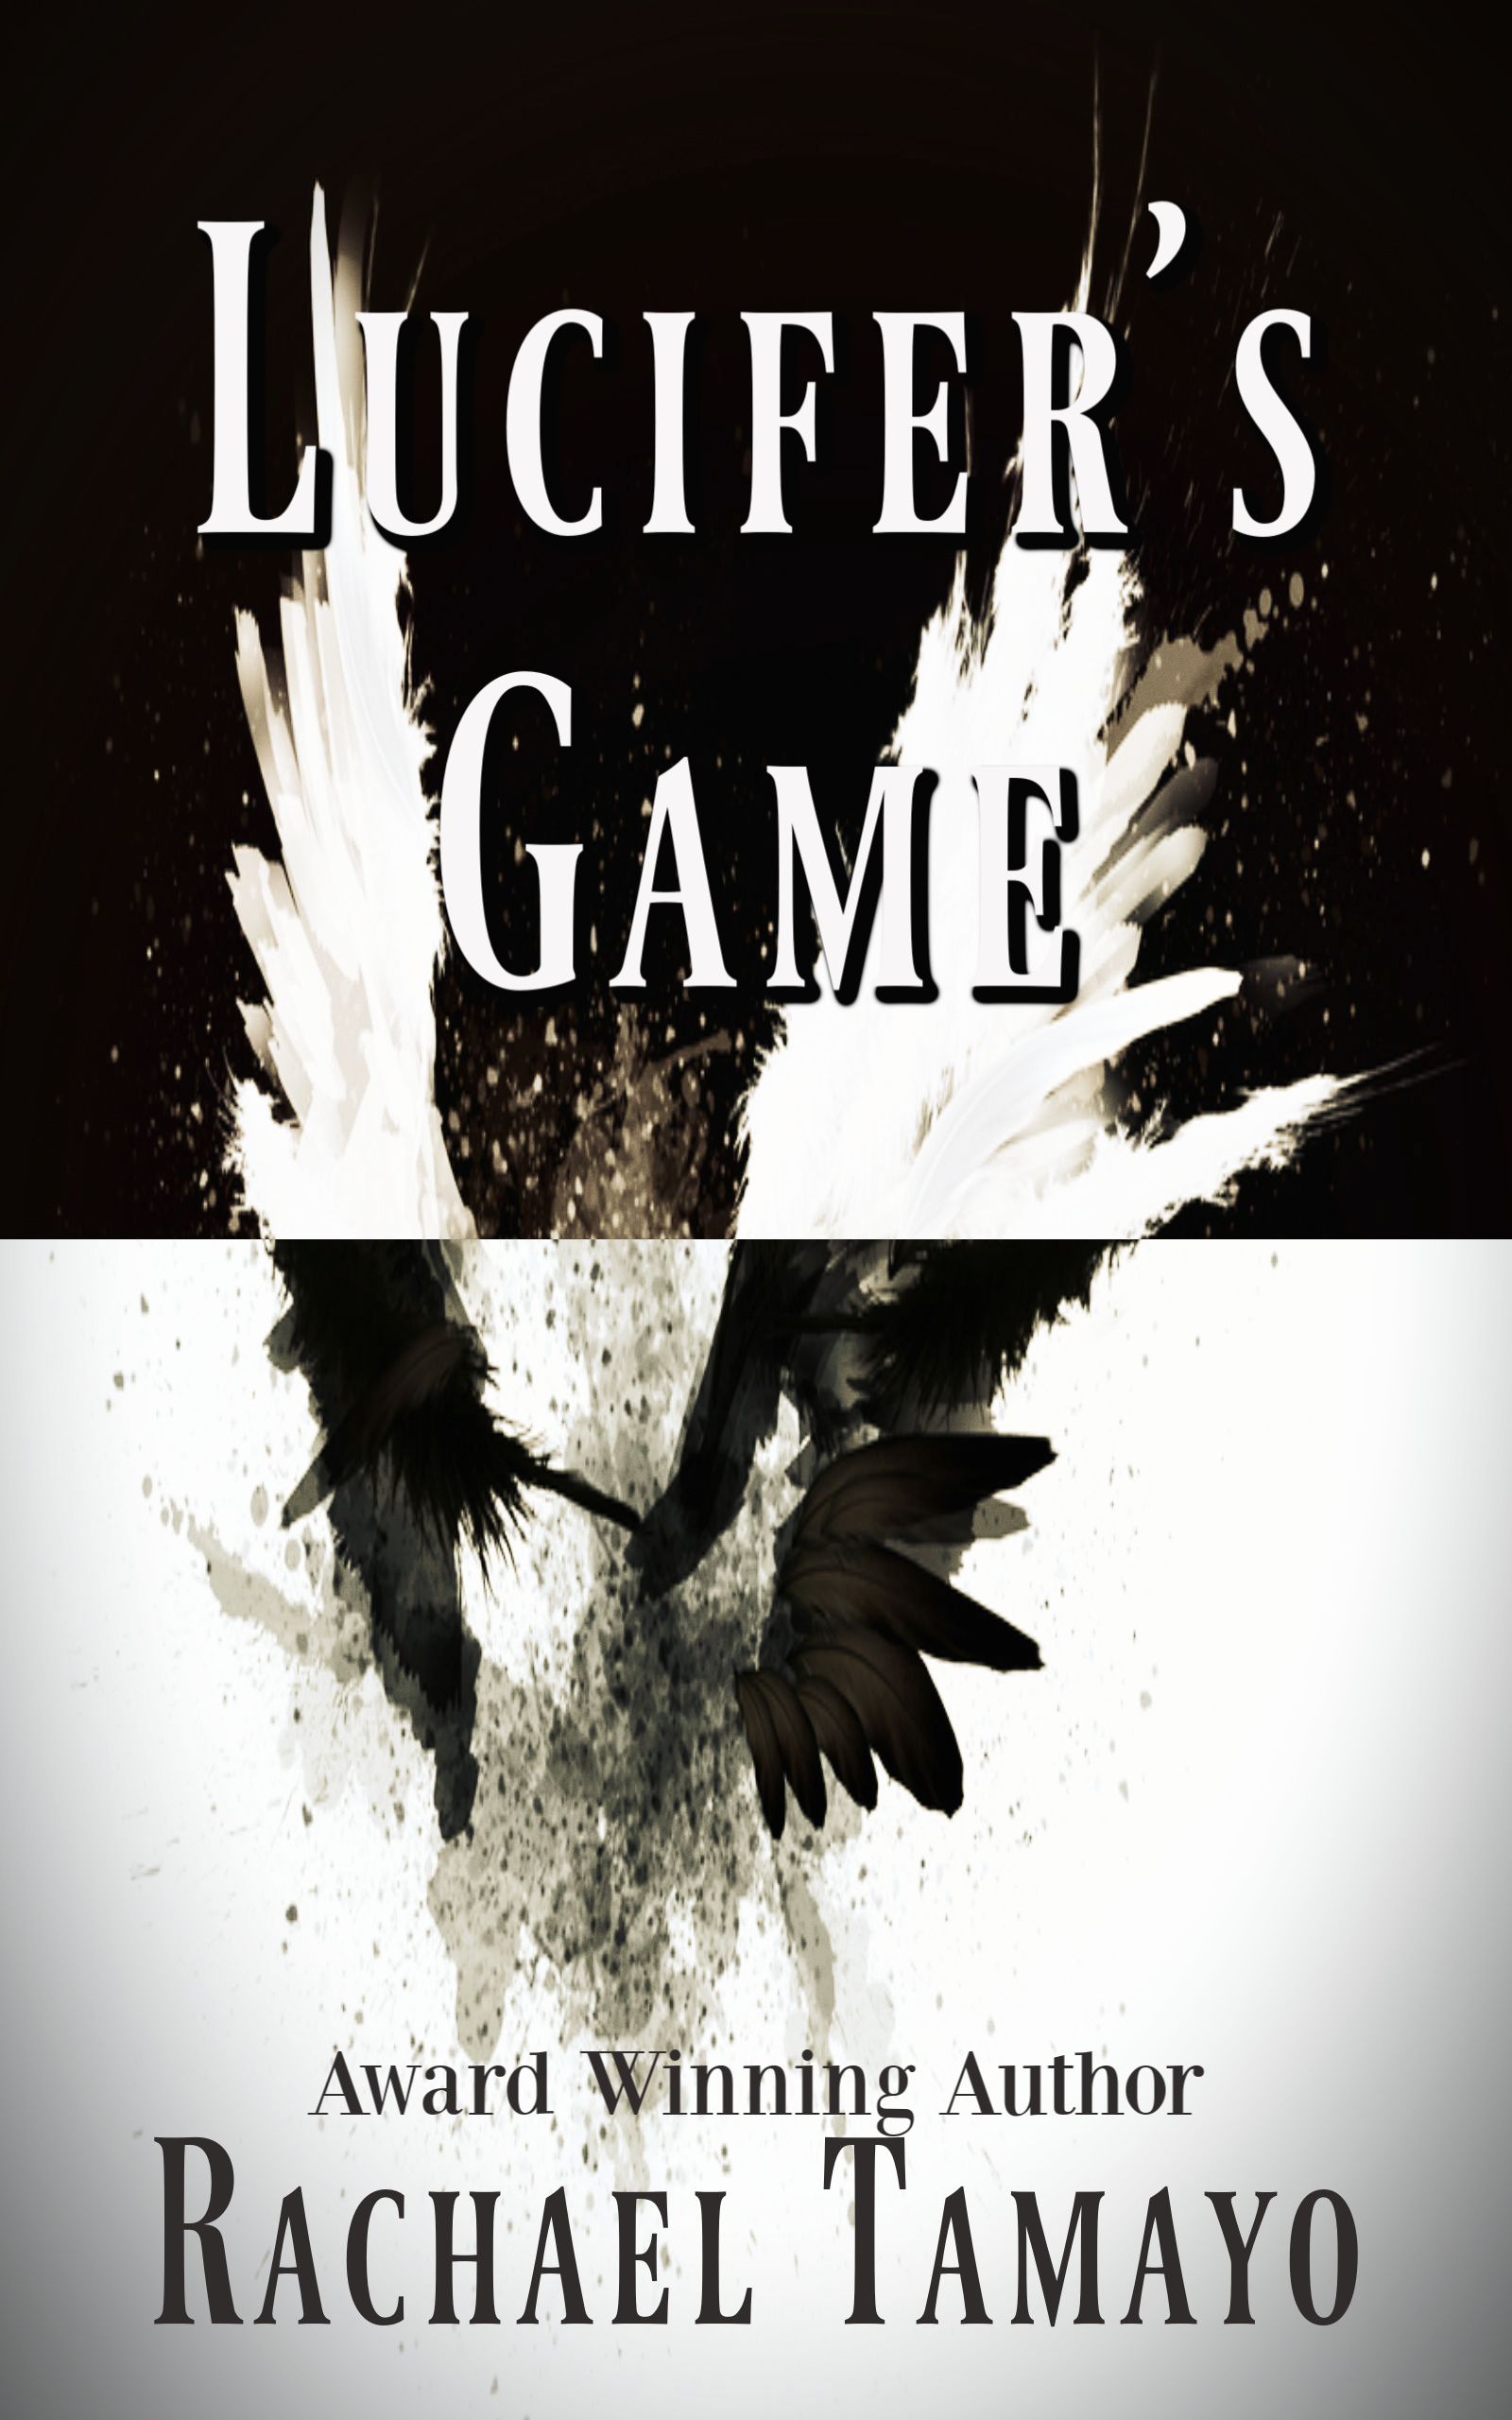 """Lucifer's Game - Cora Davies is on the Devil's playground now.Unable to conceive, Cora and Andrew are on the brink of divorce. When Andrew moves out, Cora is left alone to deal with her depression. Cora is now fair game.One young woman will be caught by Lucifer and his right hand man, Devin, the beautiful demon of lust.Trapped in the crossfire of the age-old battle of good versus evil, A choice must be made. With eternity at stake for all involved, everything rides on this broken couple, Cora and Andrew. The fallen angels have declared war, and only one is strong enough to fight. Only one can save her soul.But is it too late?***""""The Devil's Advocate meets Rosemary's Baby in this page gripping, intense thriller. A must read for paranormal fans.""""Cynthia Austin, Author of The Pendant Series"""